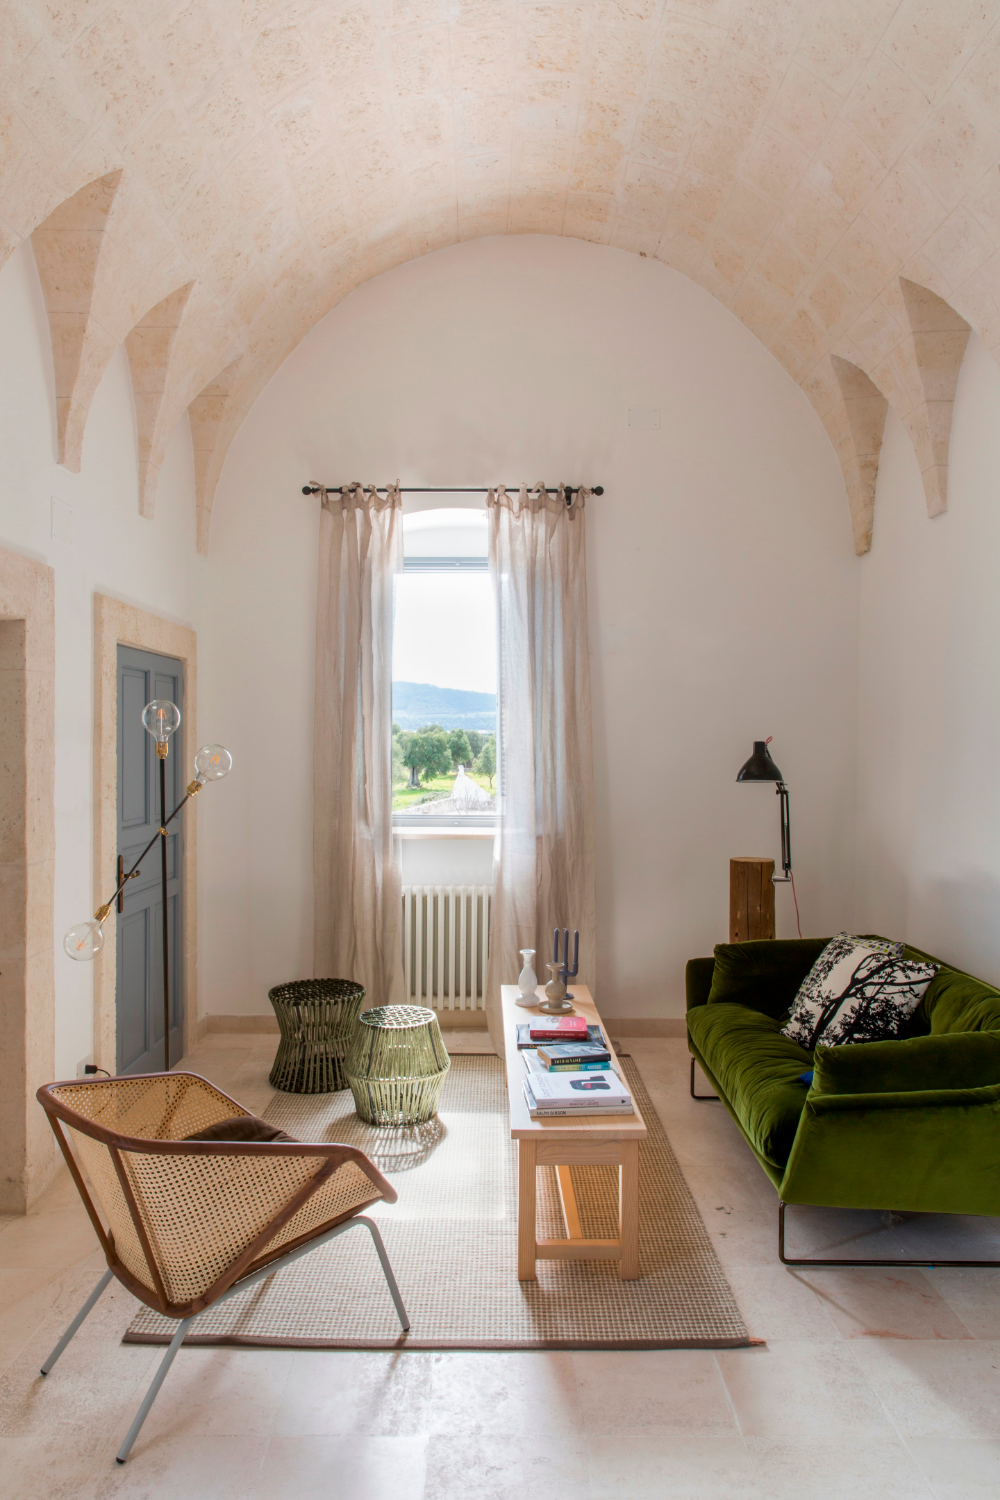 Design Trends 9 Ways Arches Are Taking Over Interior Design With